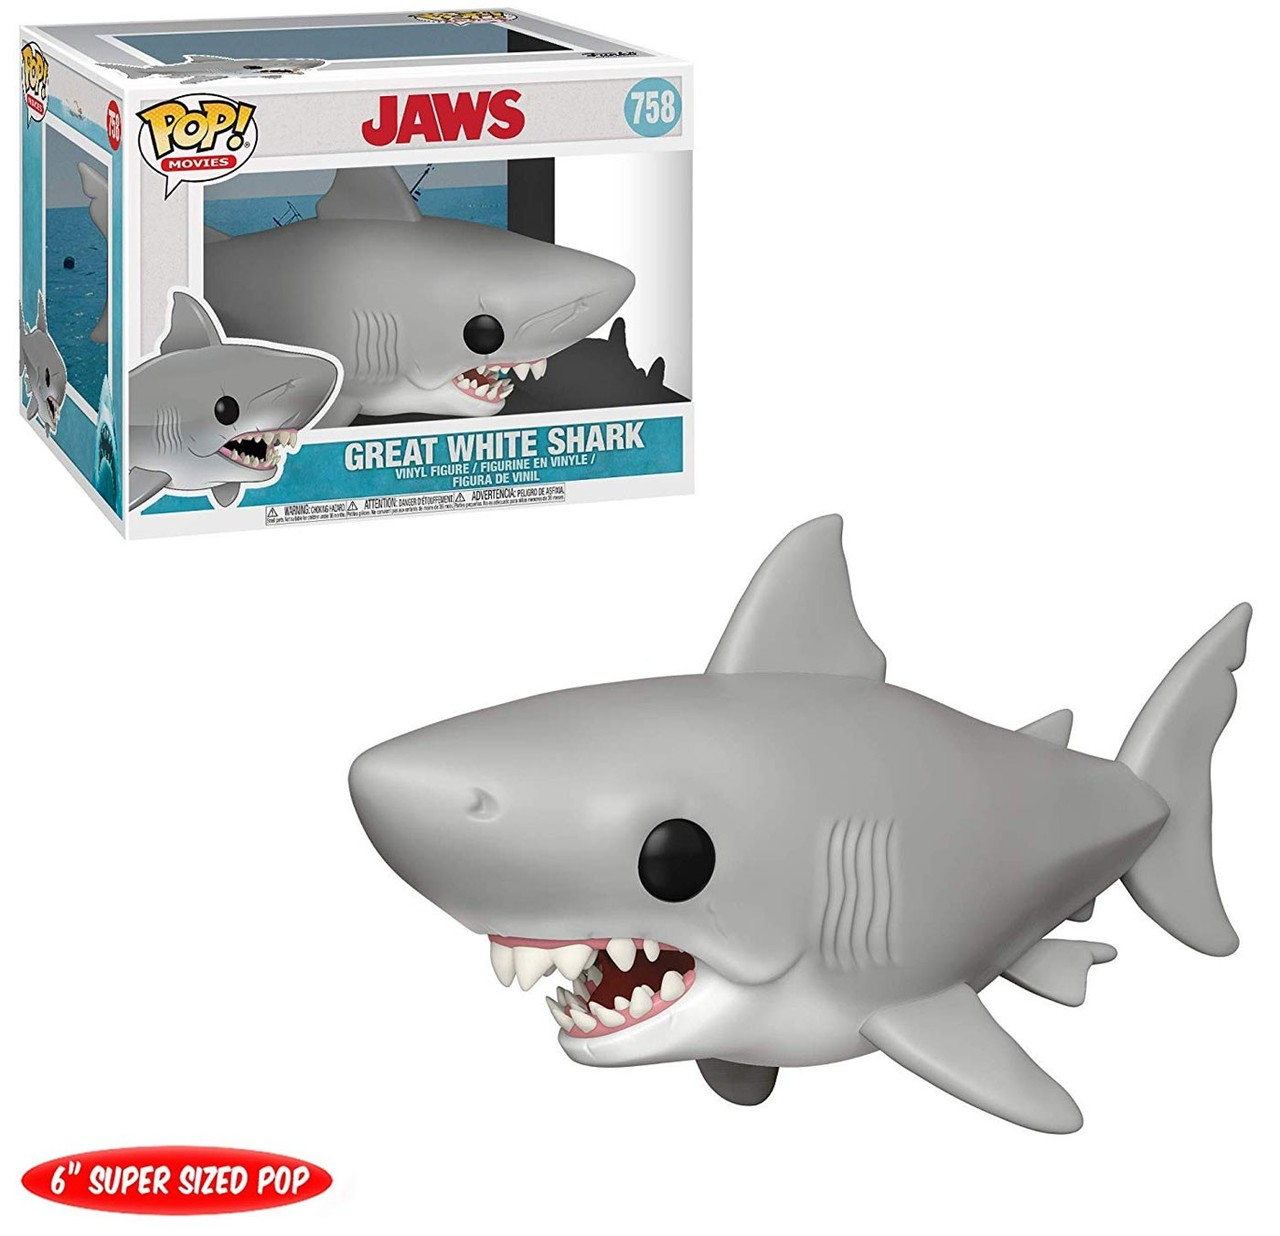 POP! Movies: Jaws - Great White Shark 6